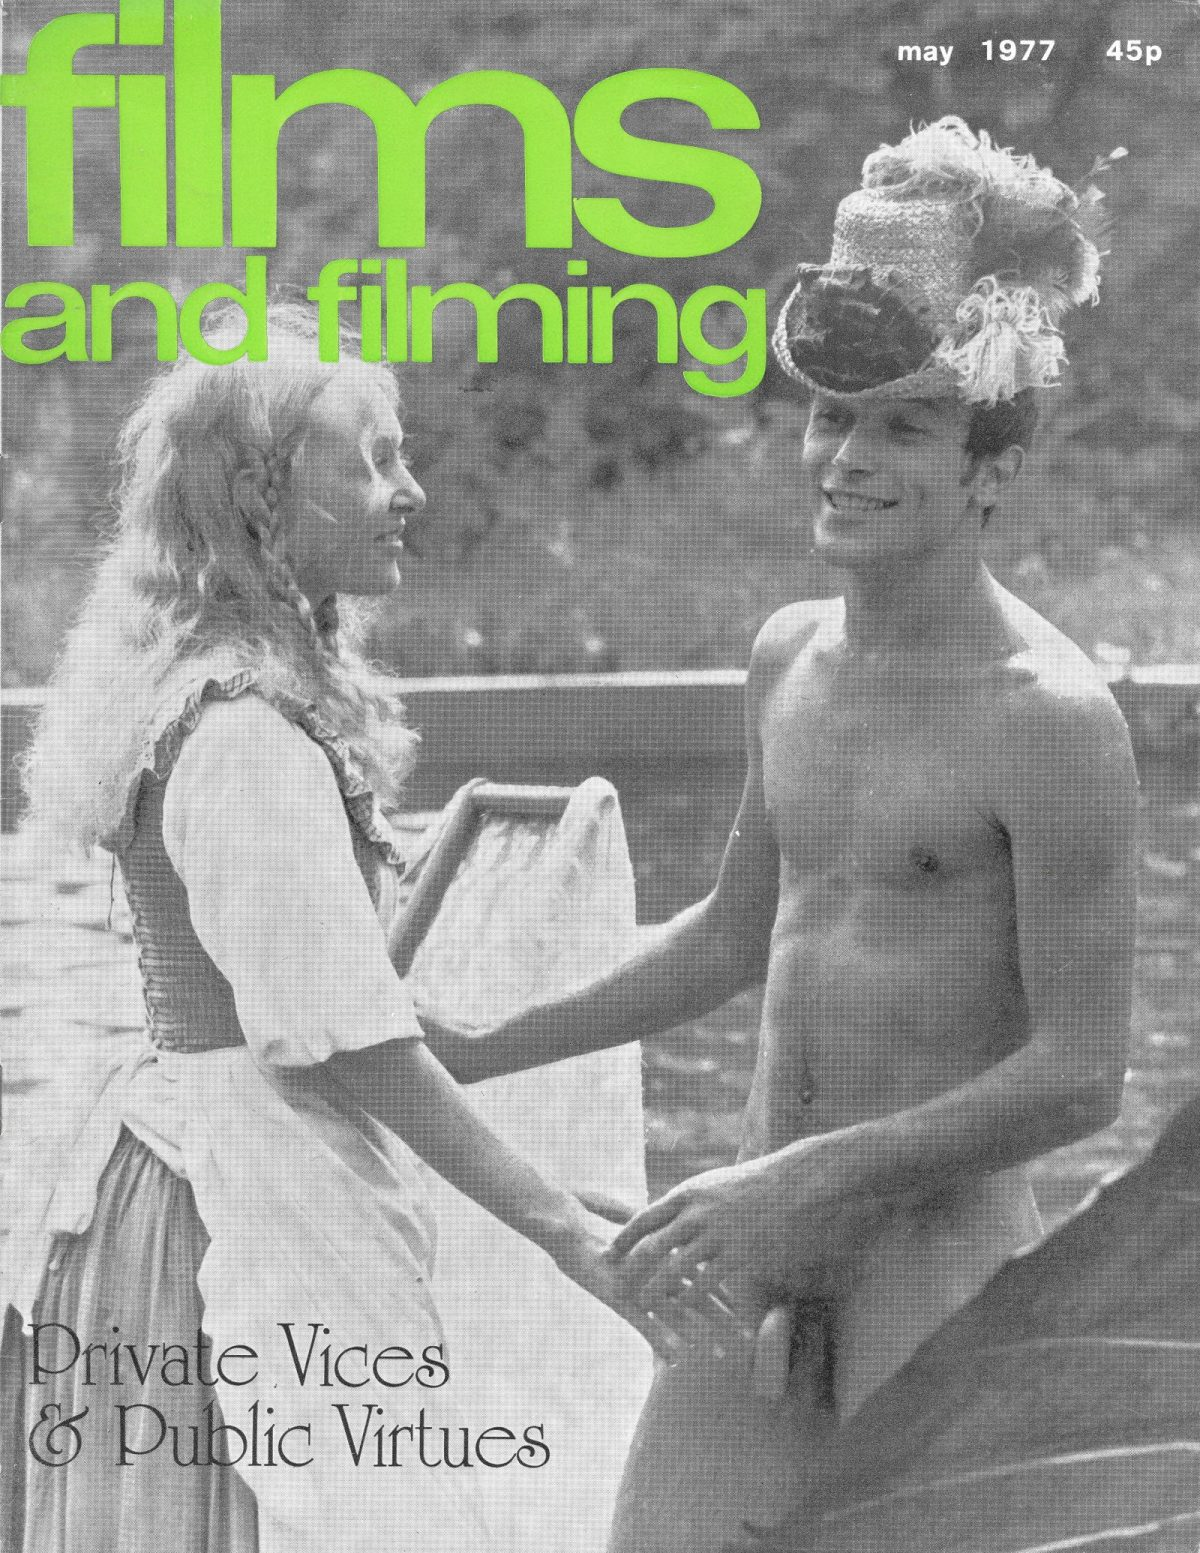 Films & Filming, film, magazines, European Cinema, sex, 1970s